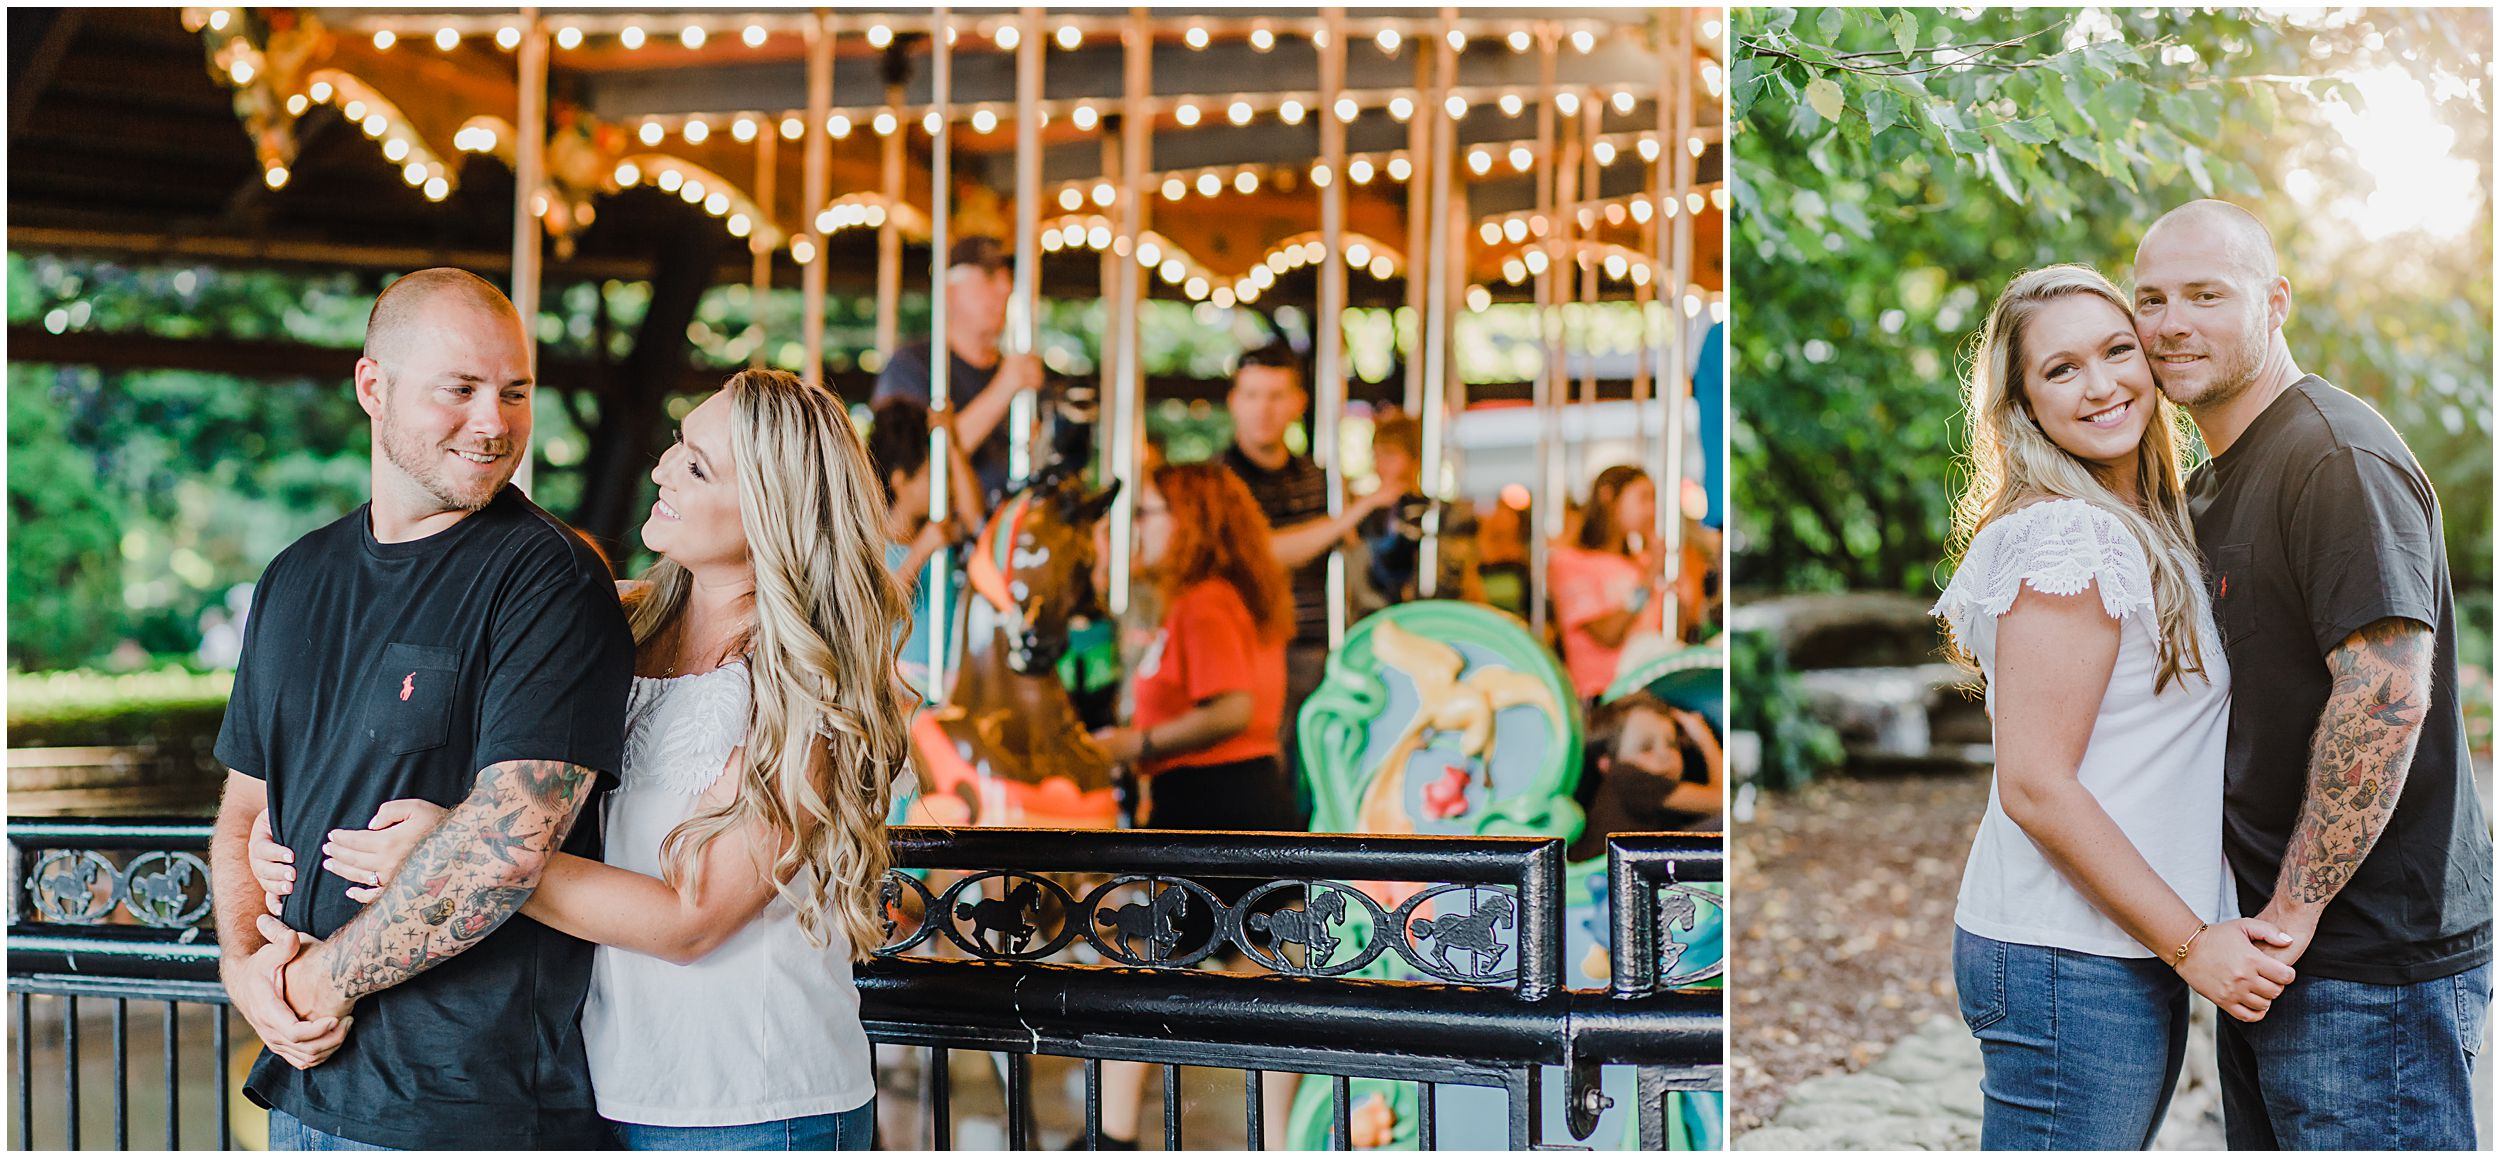 kennywood_engagement_session_0014.jpg